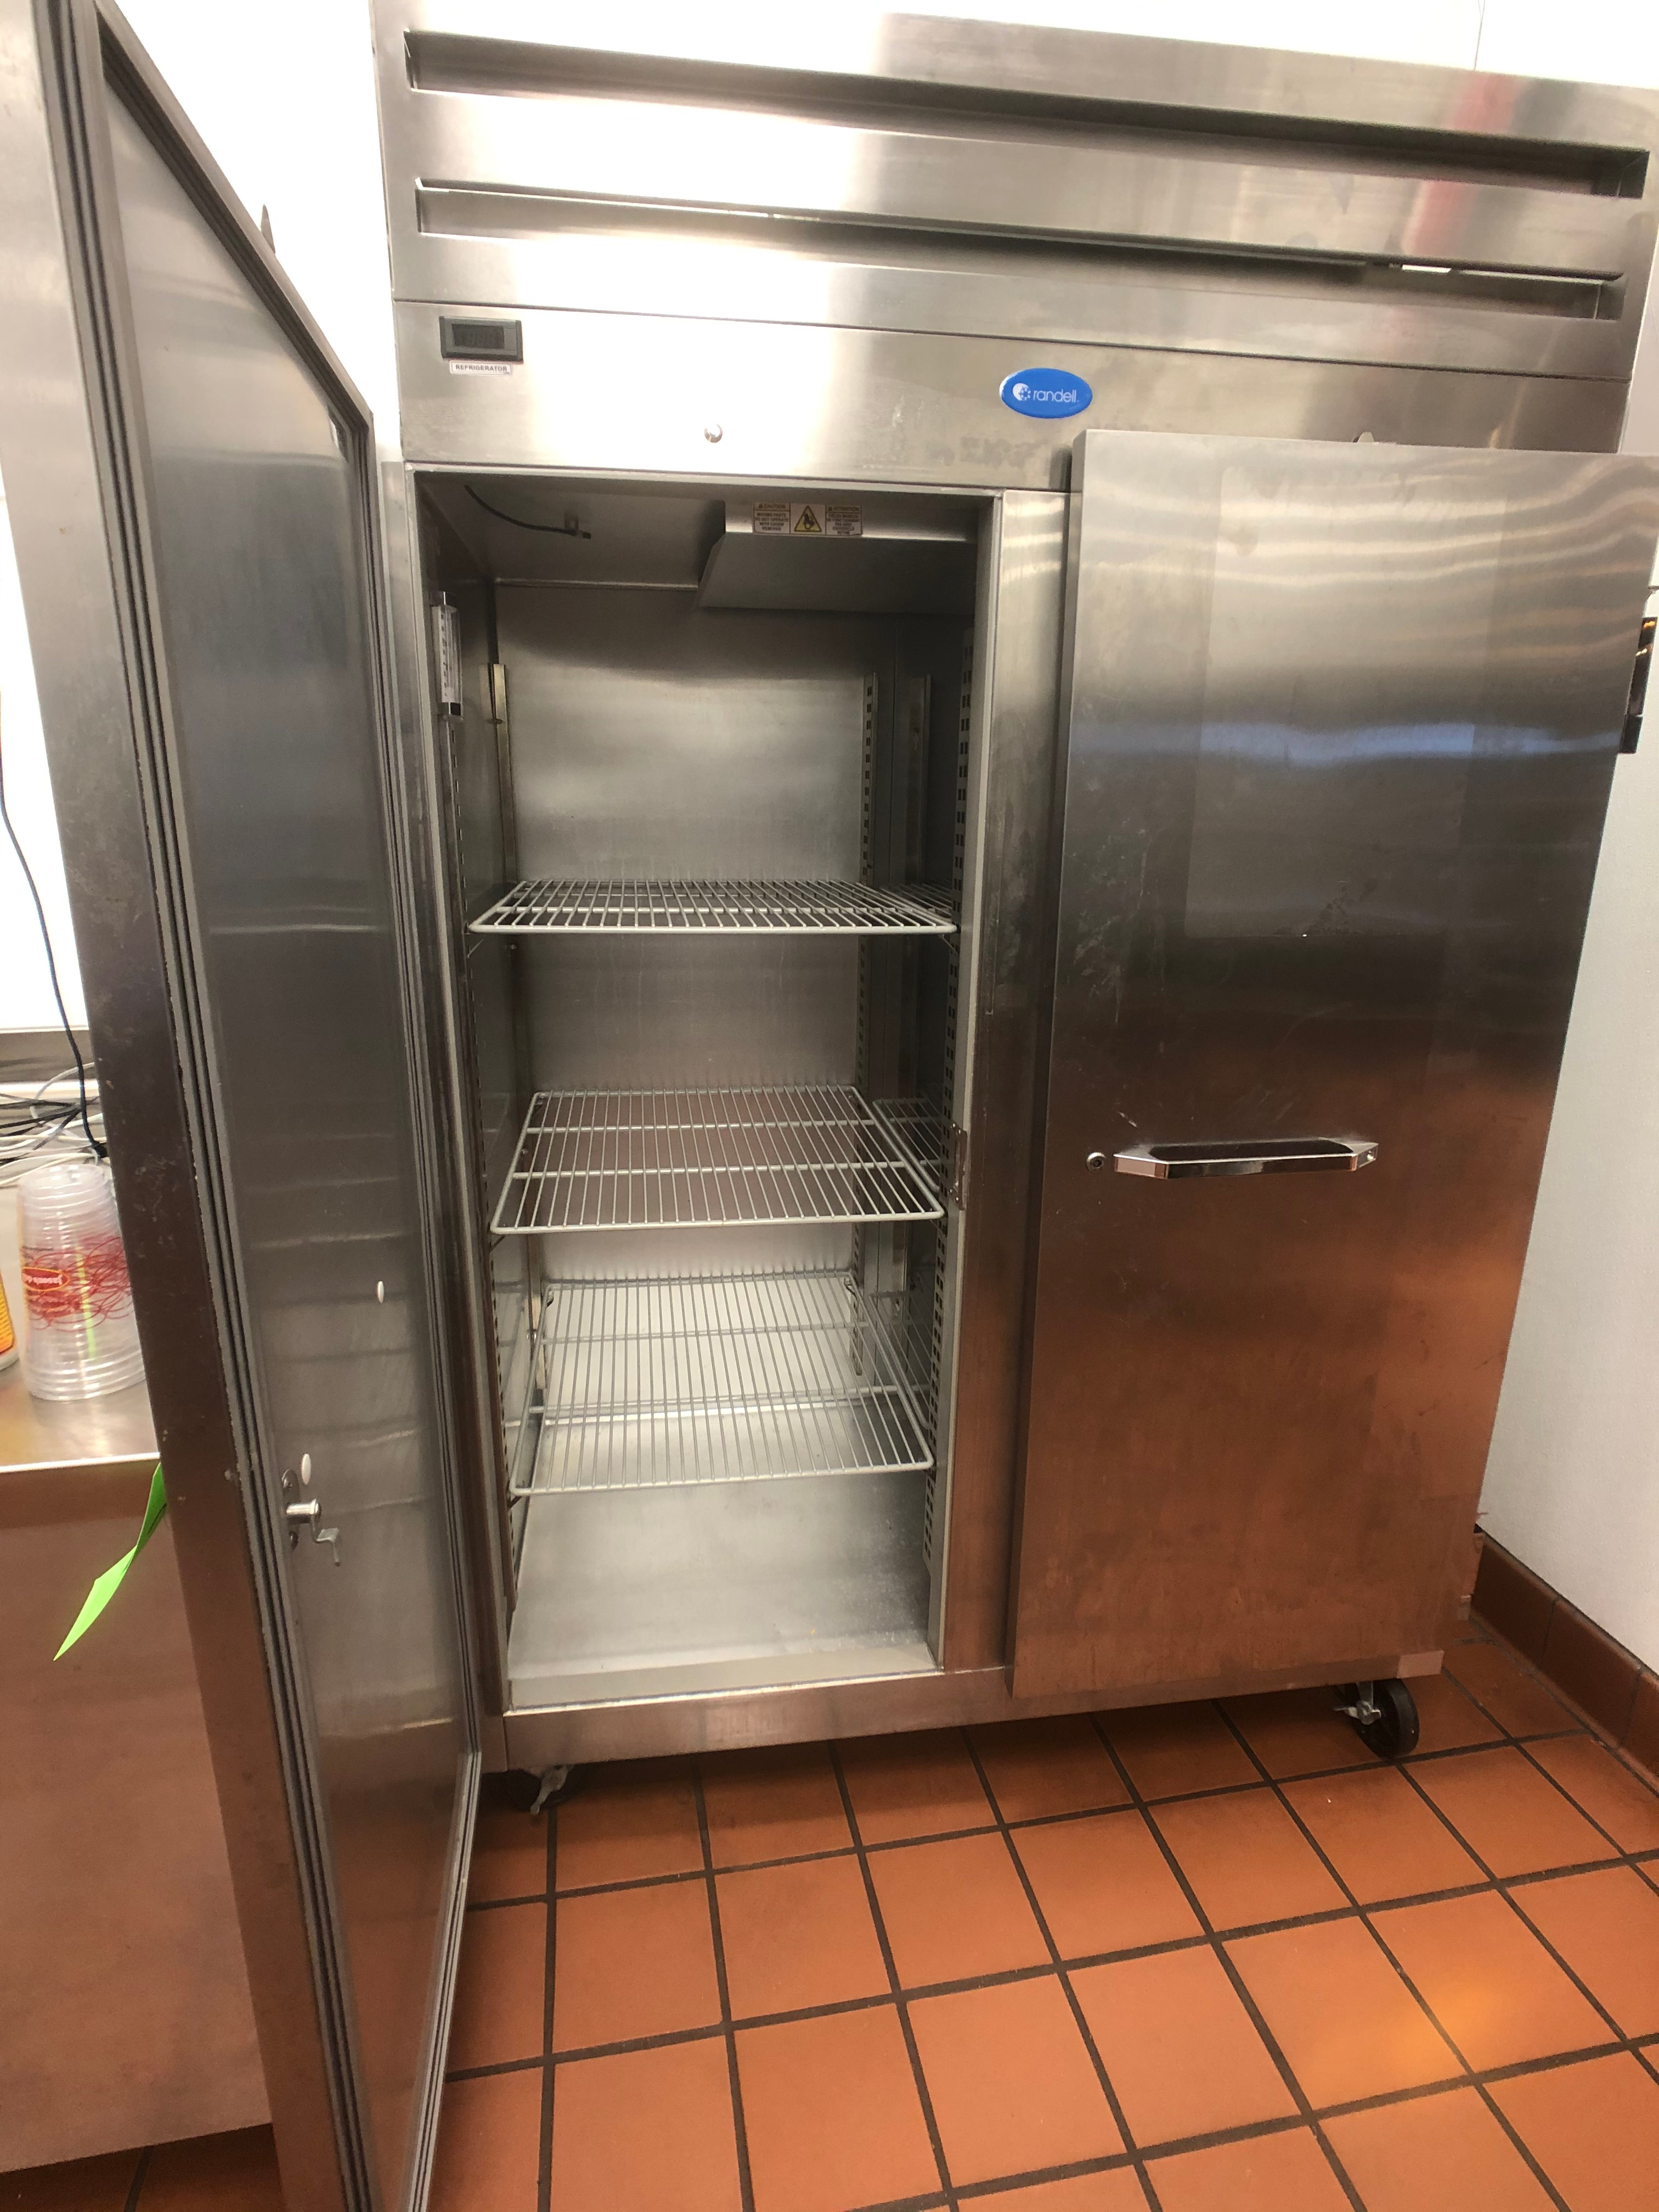 Randell 46 CuFt Reach-In S/S Refrigerator, Model 2020, S/N W858501-1, 2-Door, Mounted on Casters - Image 2 of 4